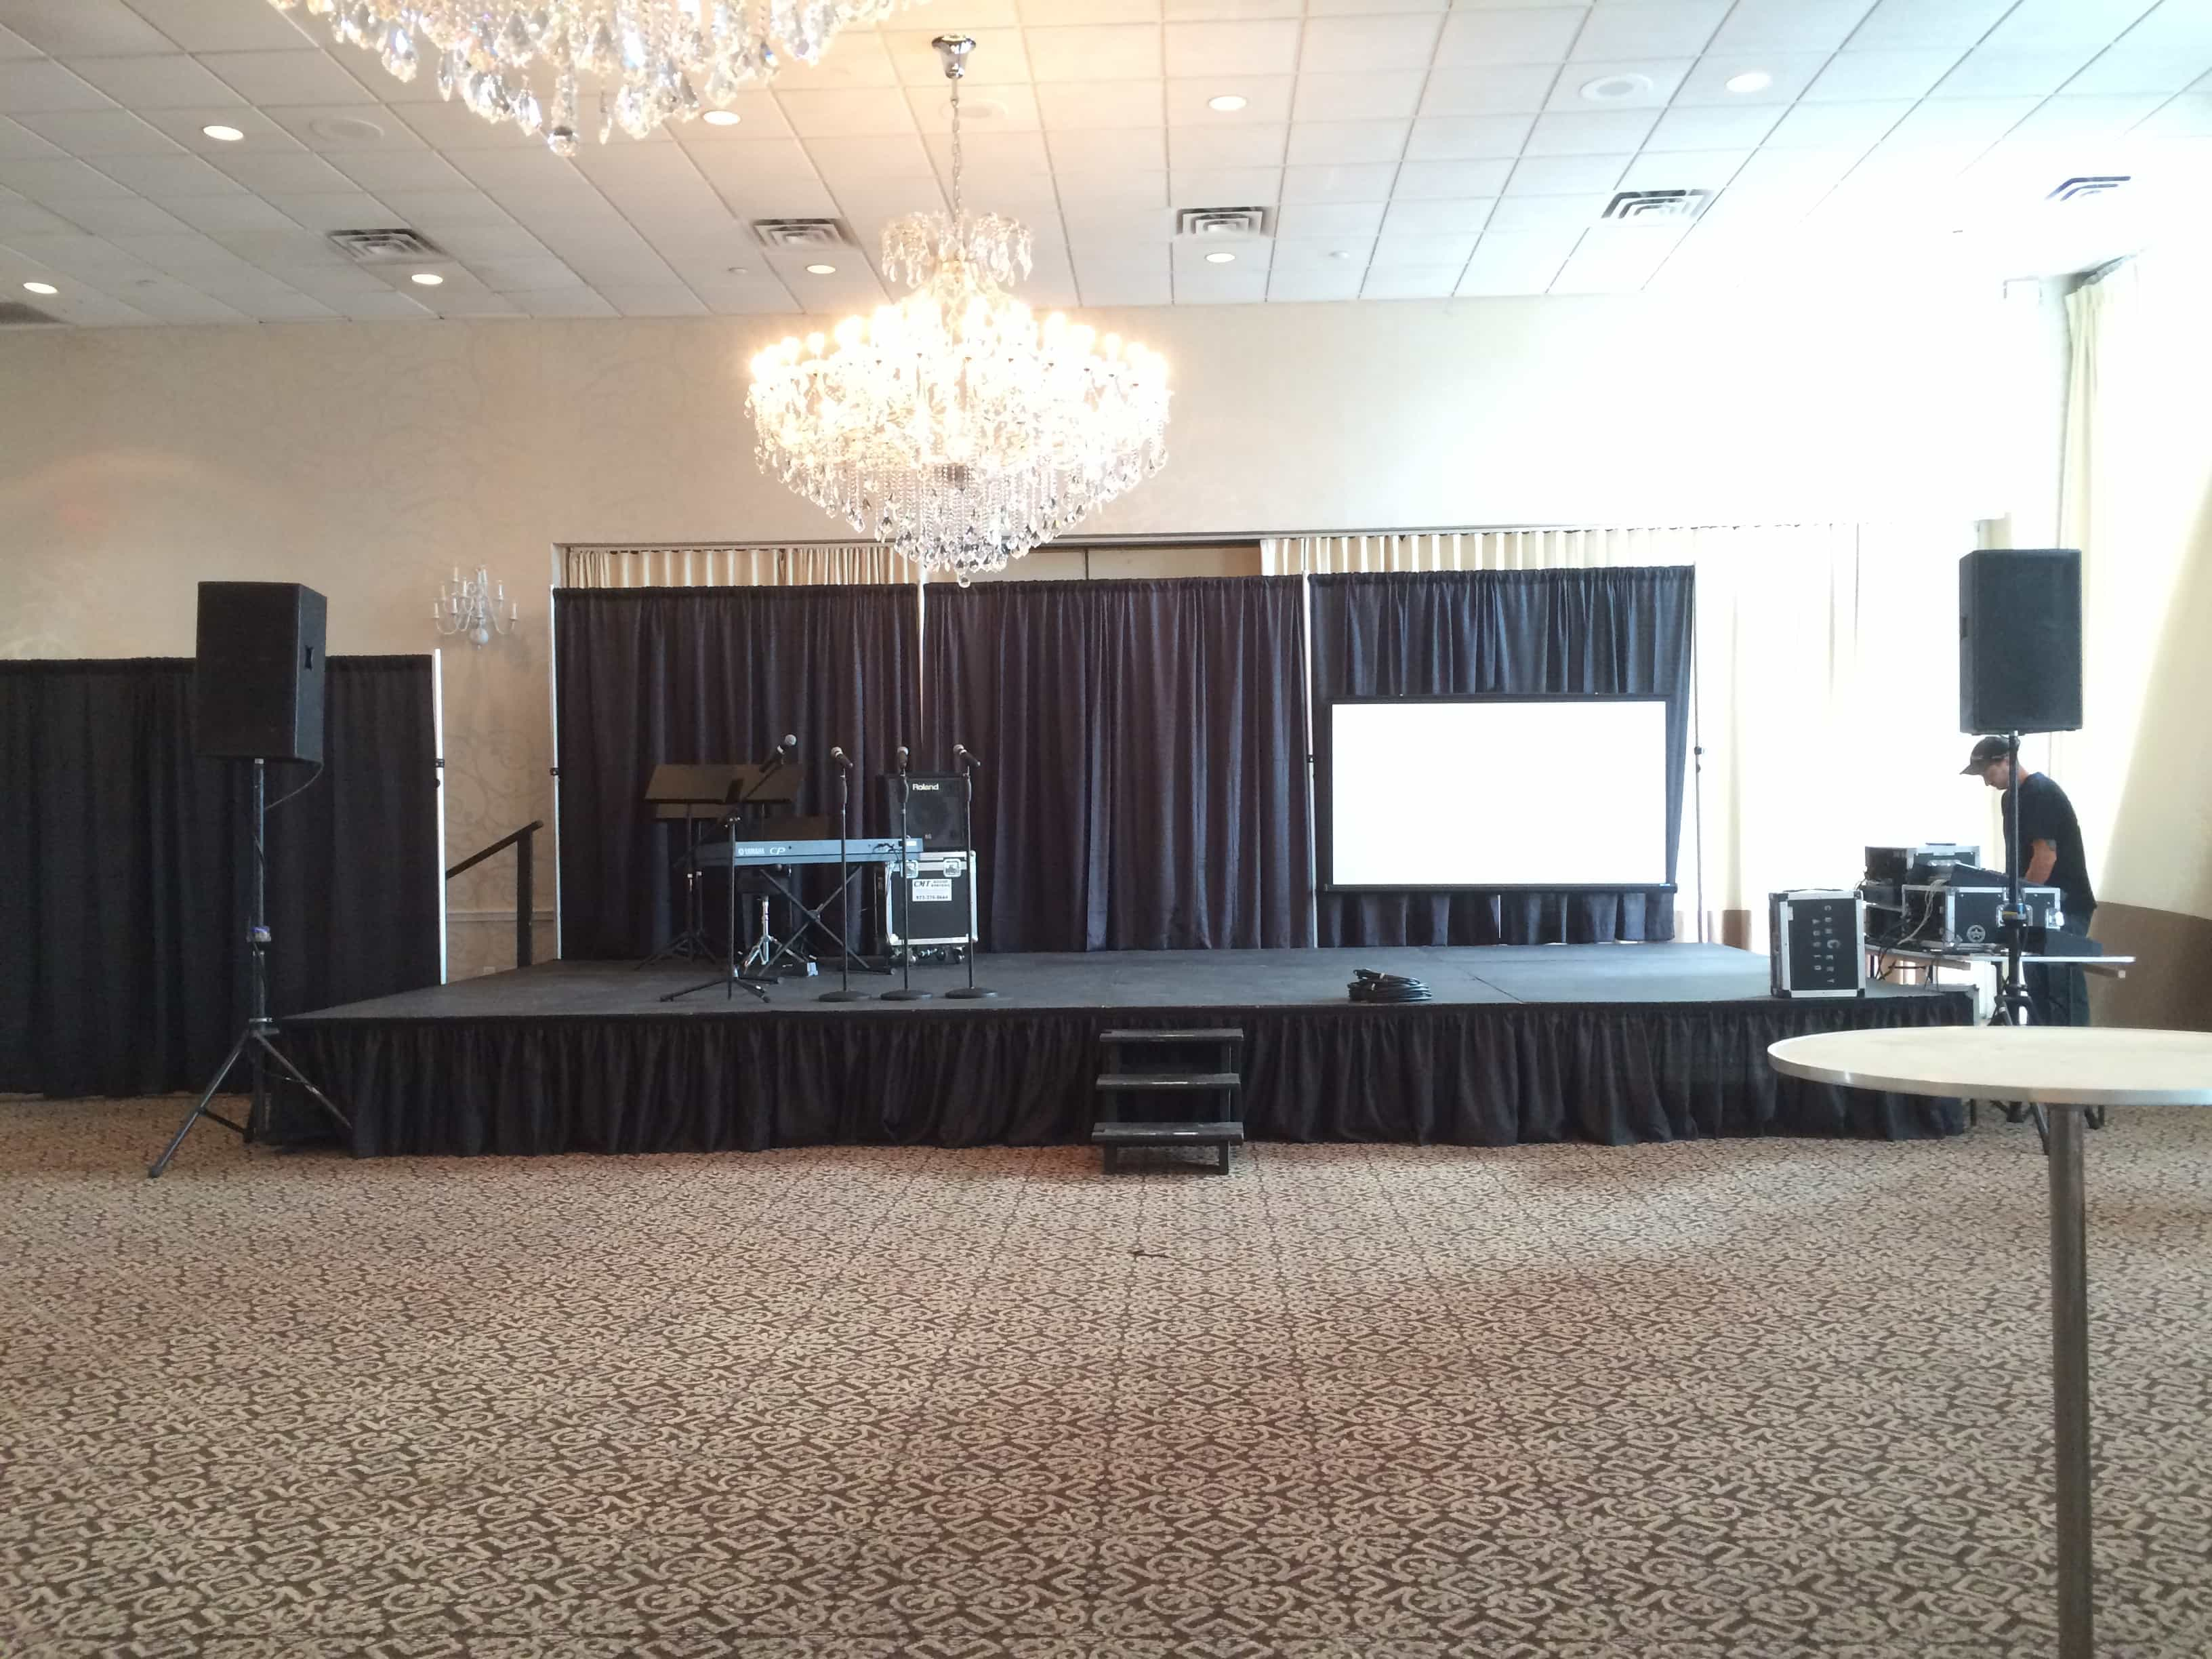 pipe pipedrape convention backdrop drape of s harold drapes rentals and florida